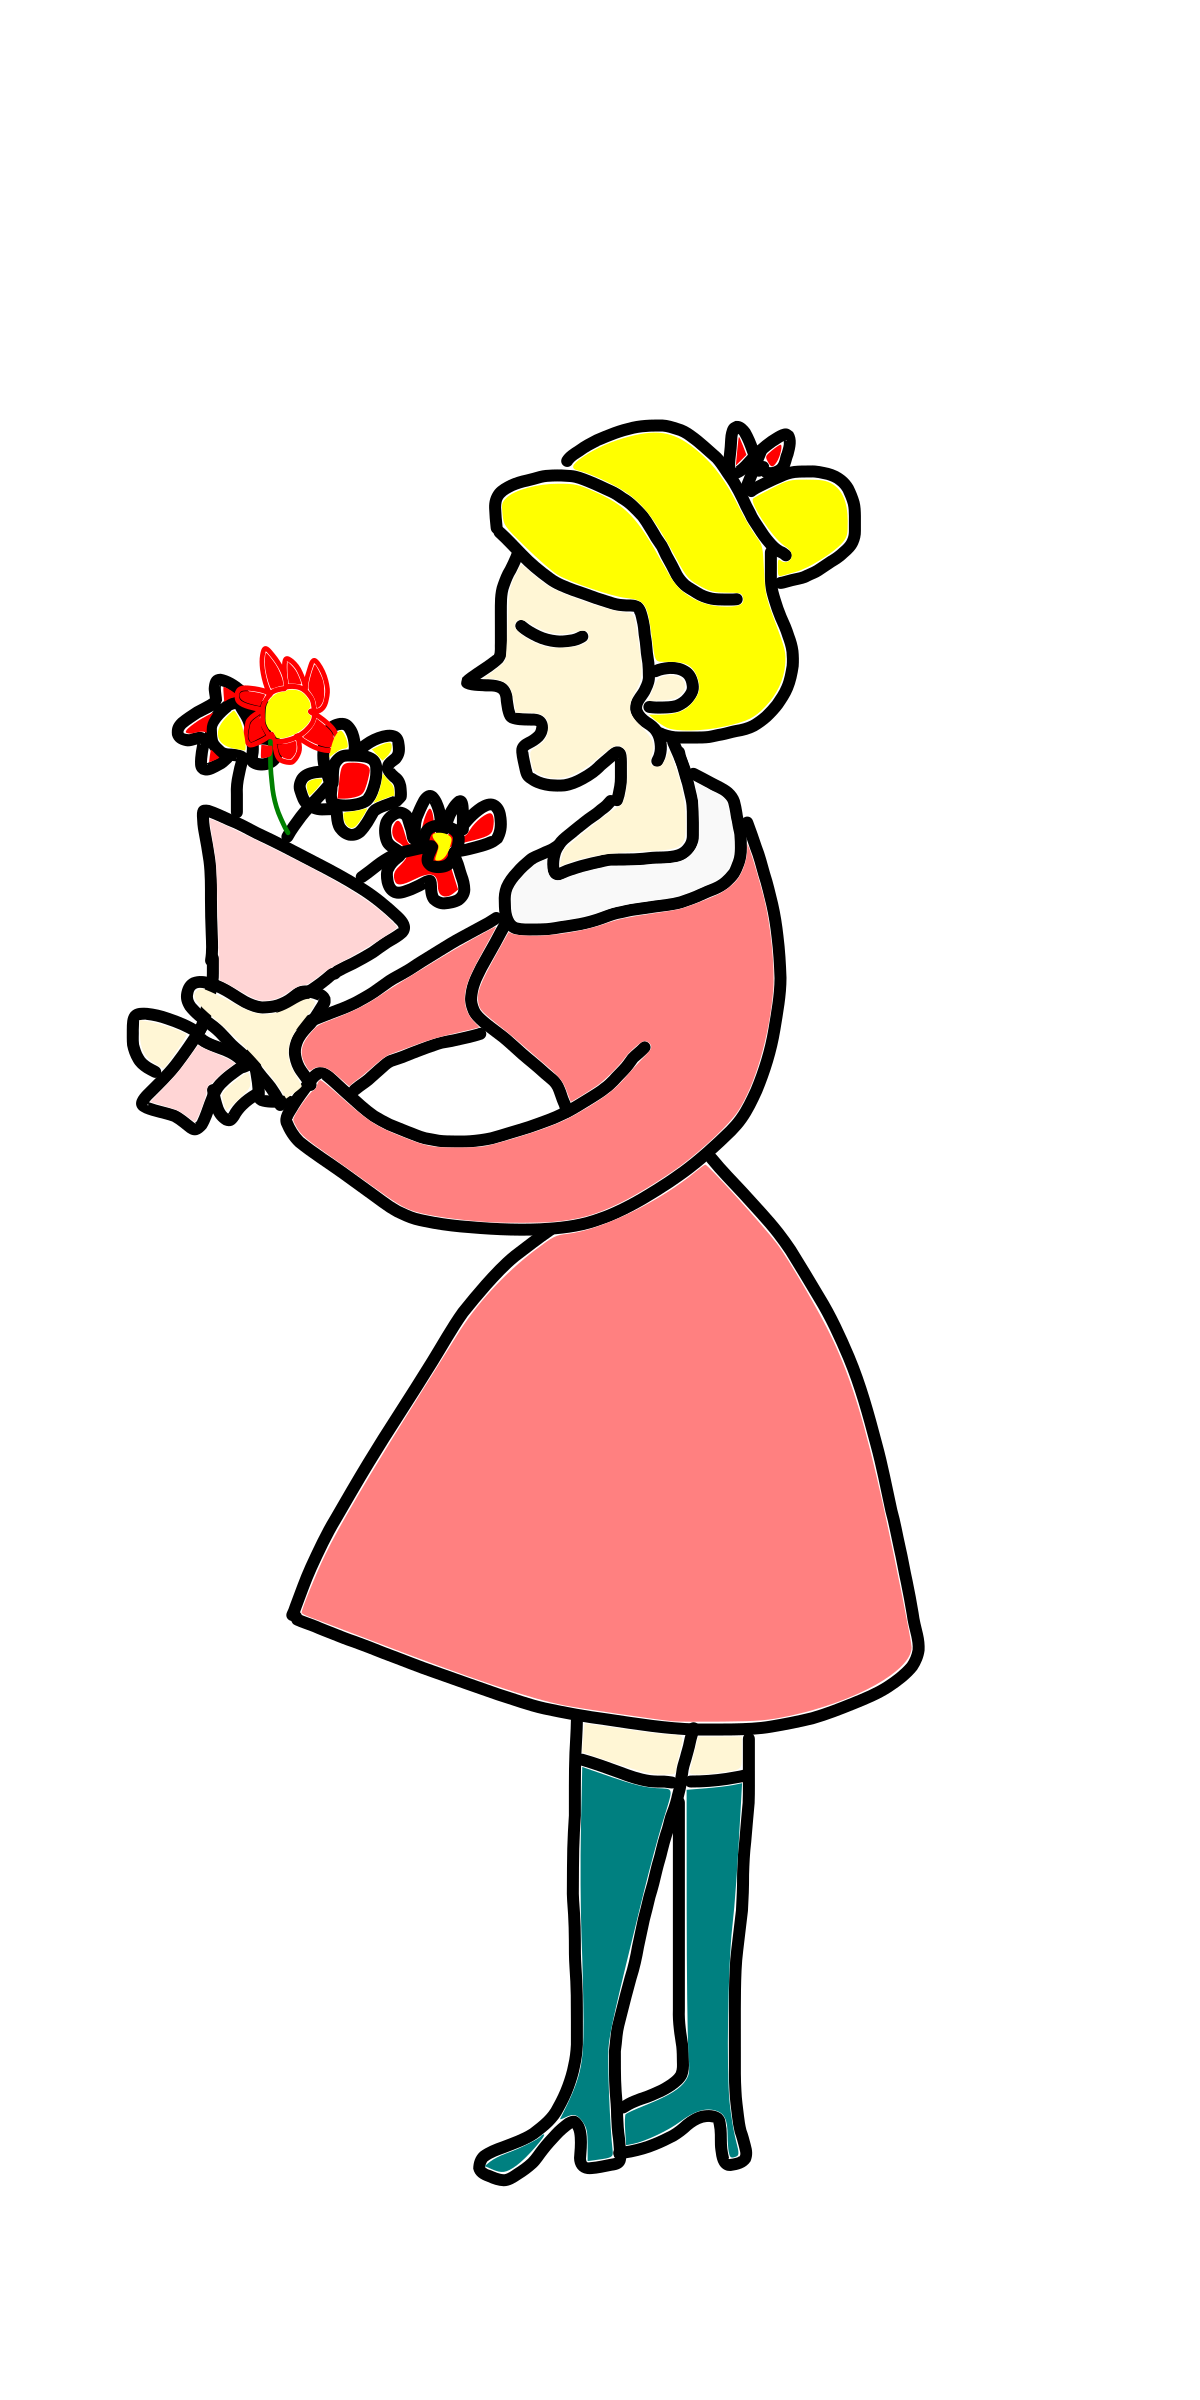 Free Smell Cliparts, Download Free Clip Art, Free Clip Art.